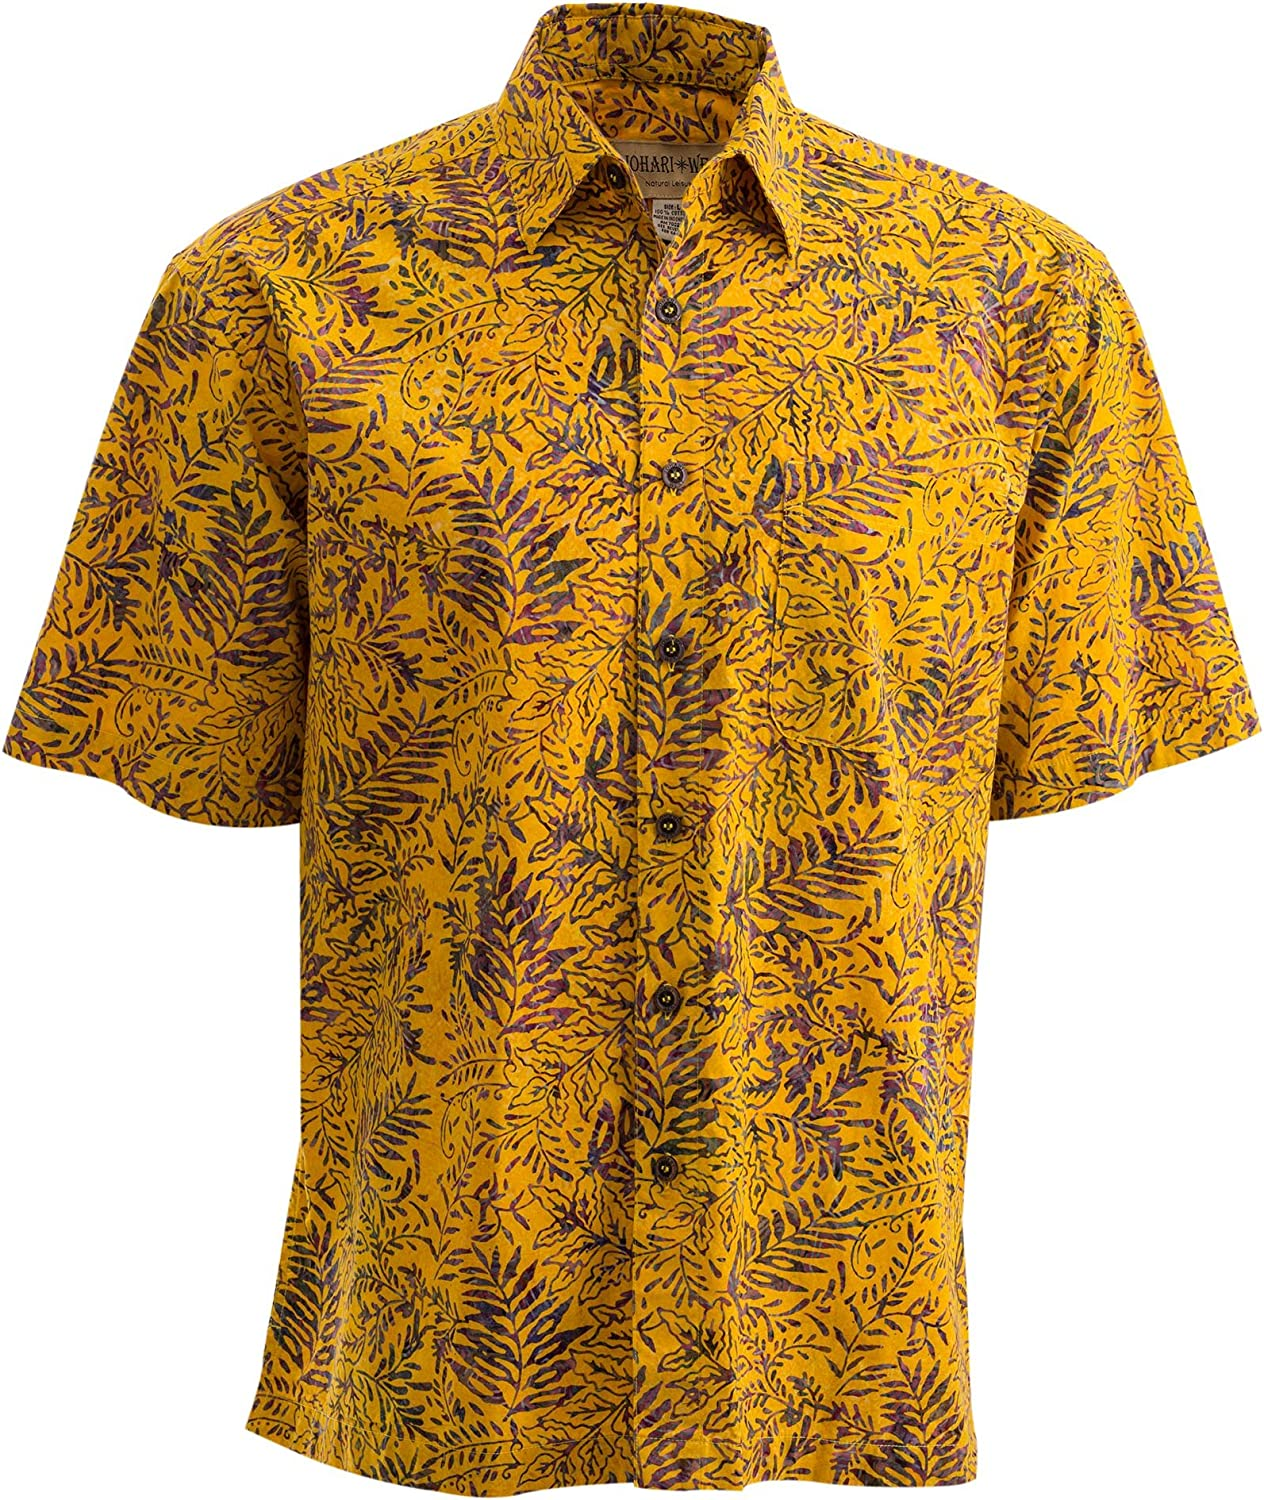 Johari West Tropical Tobago Hawaiian Batik Shirt